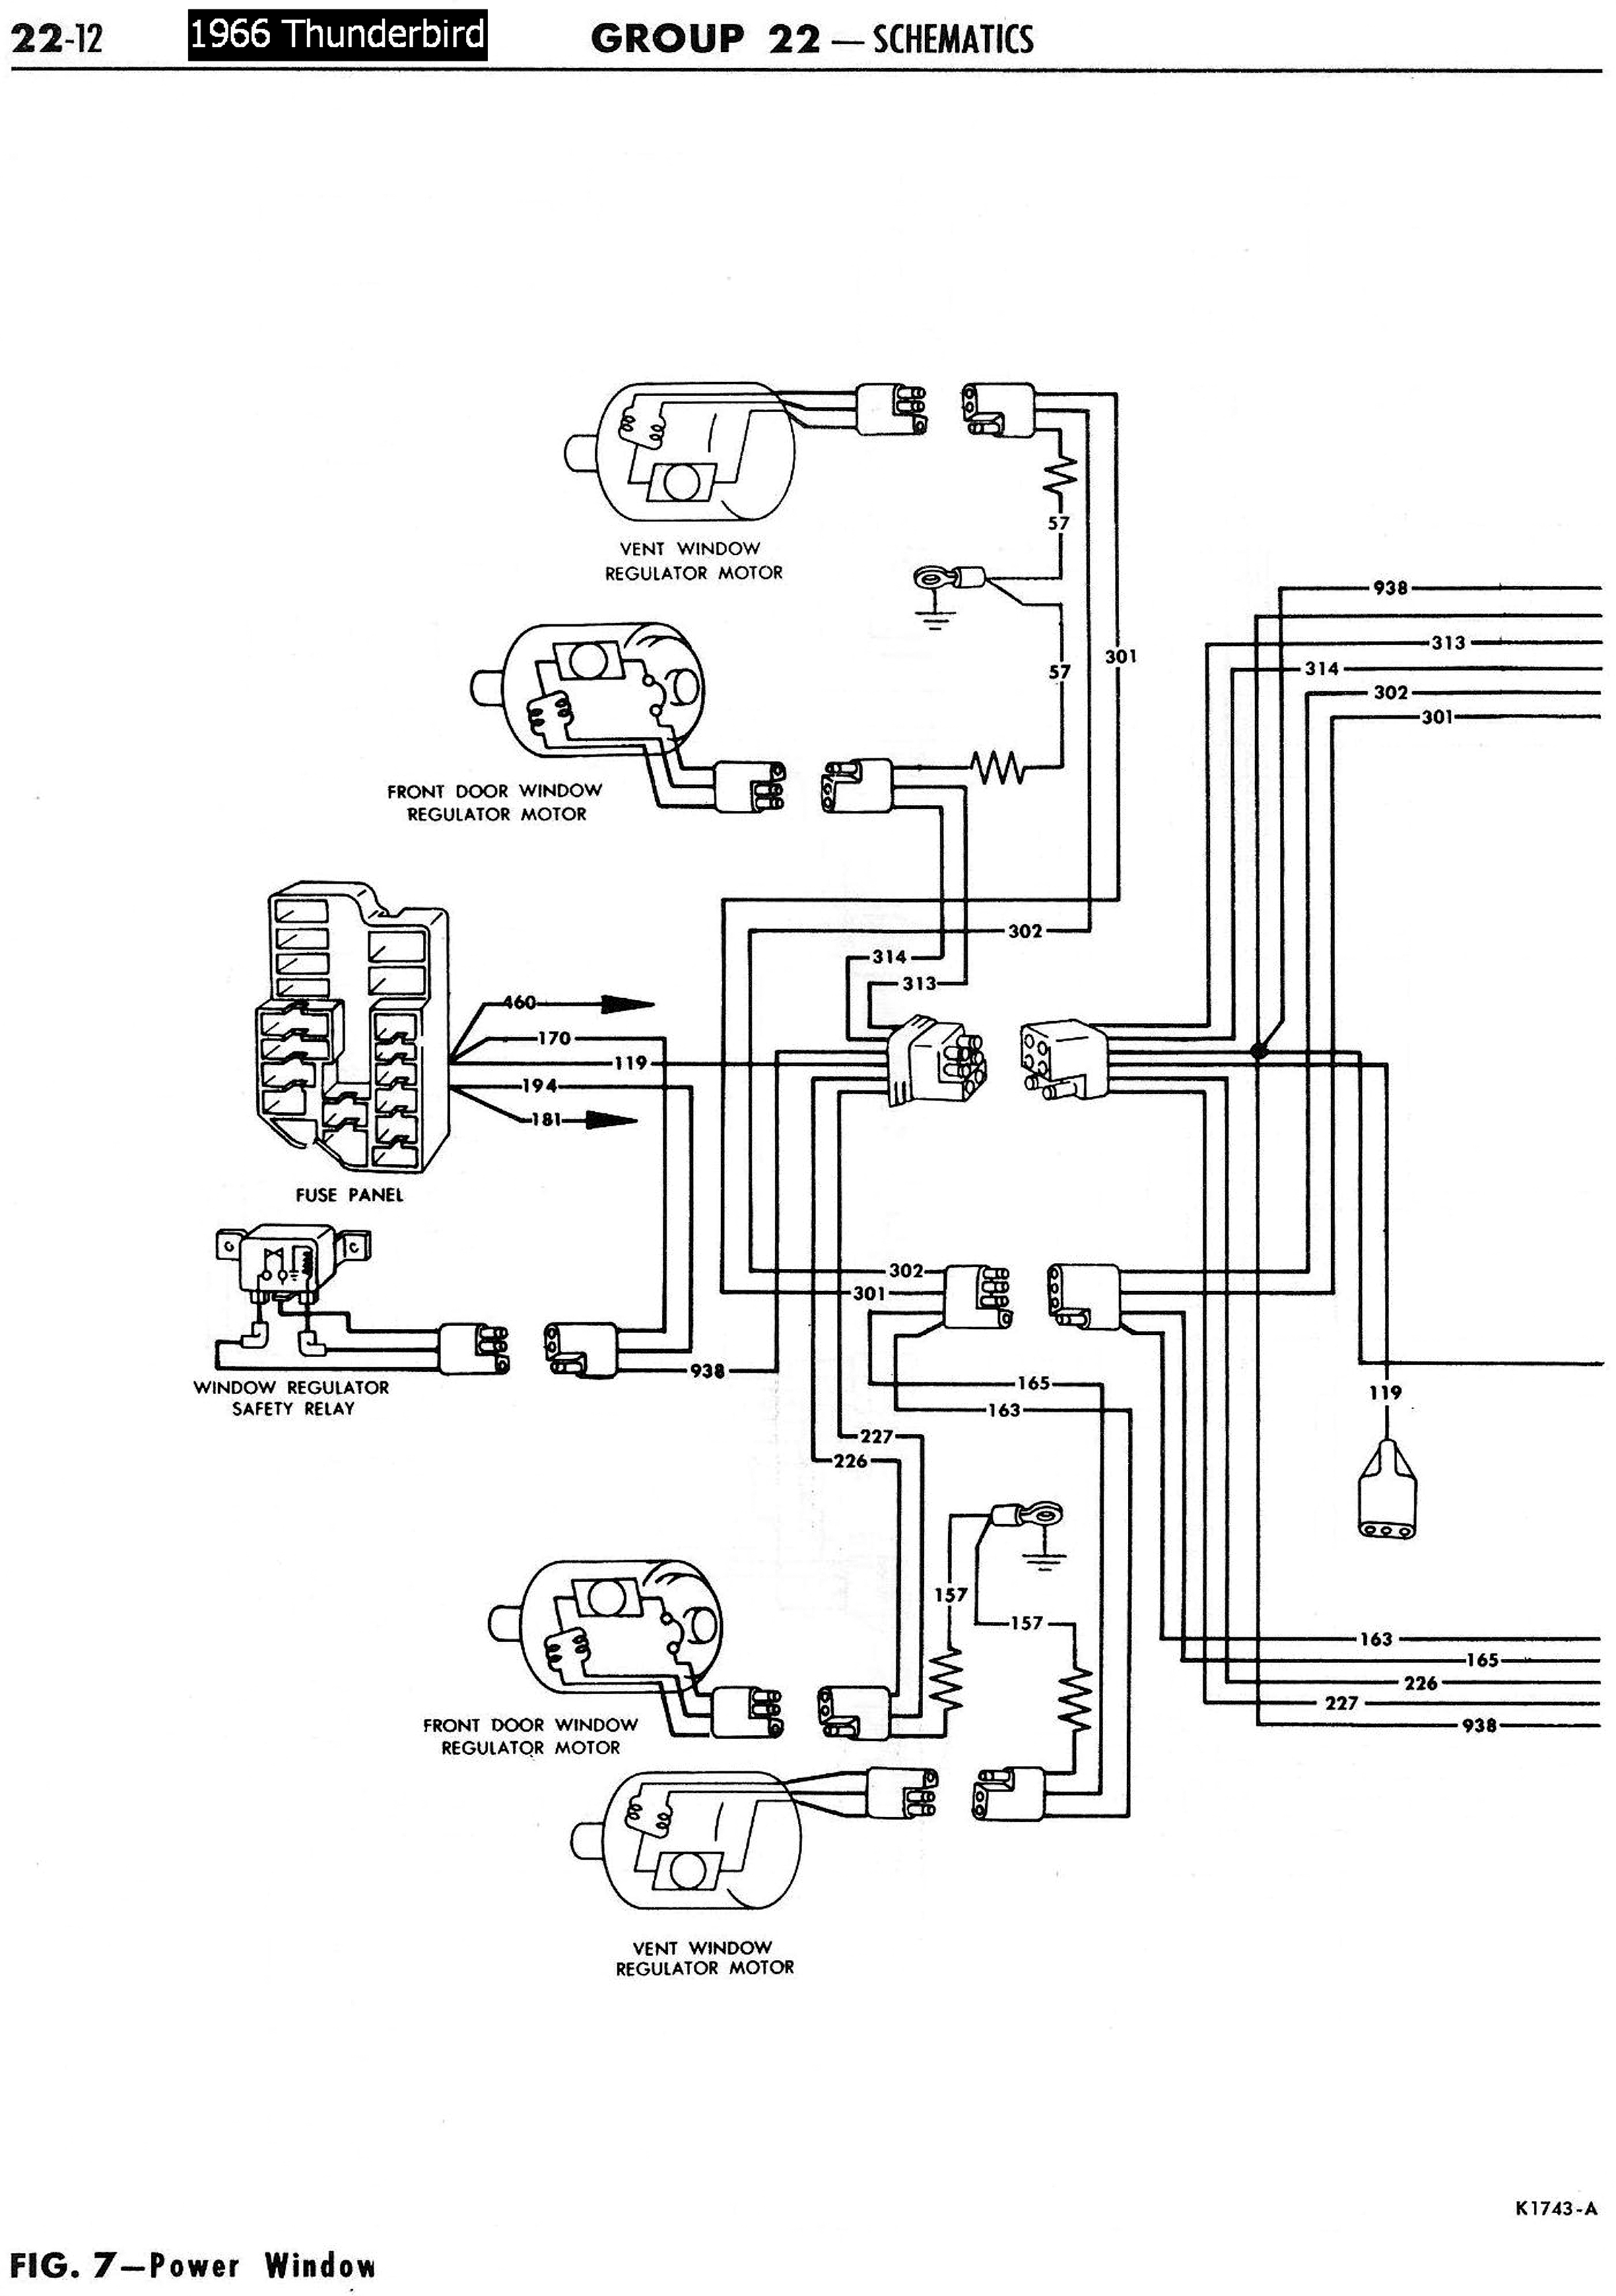 1964 Ford T Bird Wiring Diagram Trusted Galaxie 500 Fader 1958 68 Electrical Schematics Headlight Switch